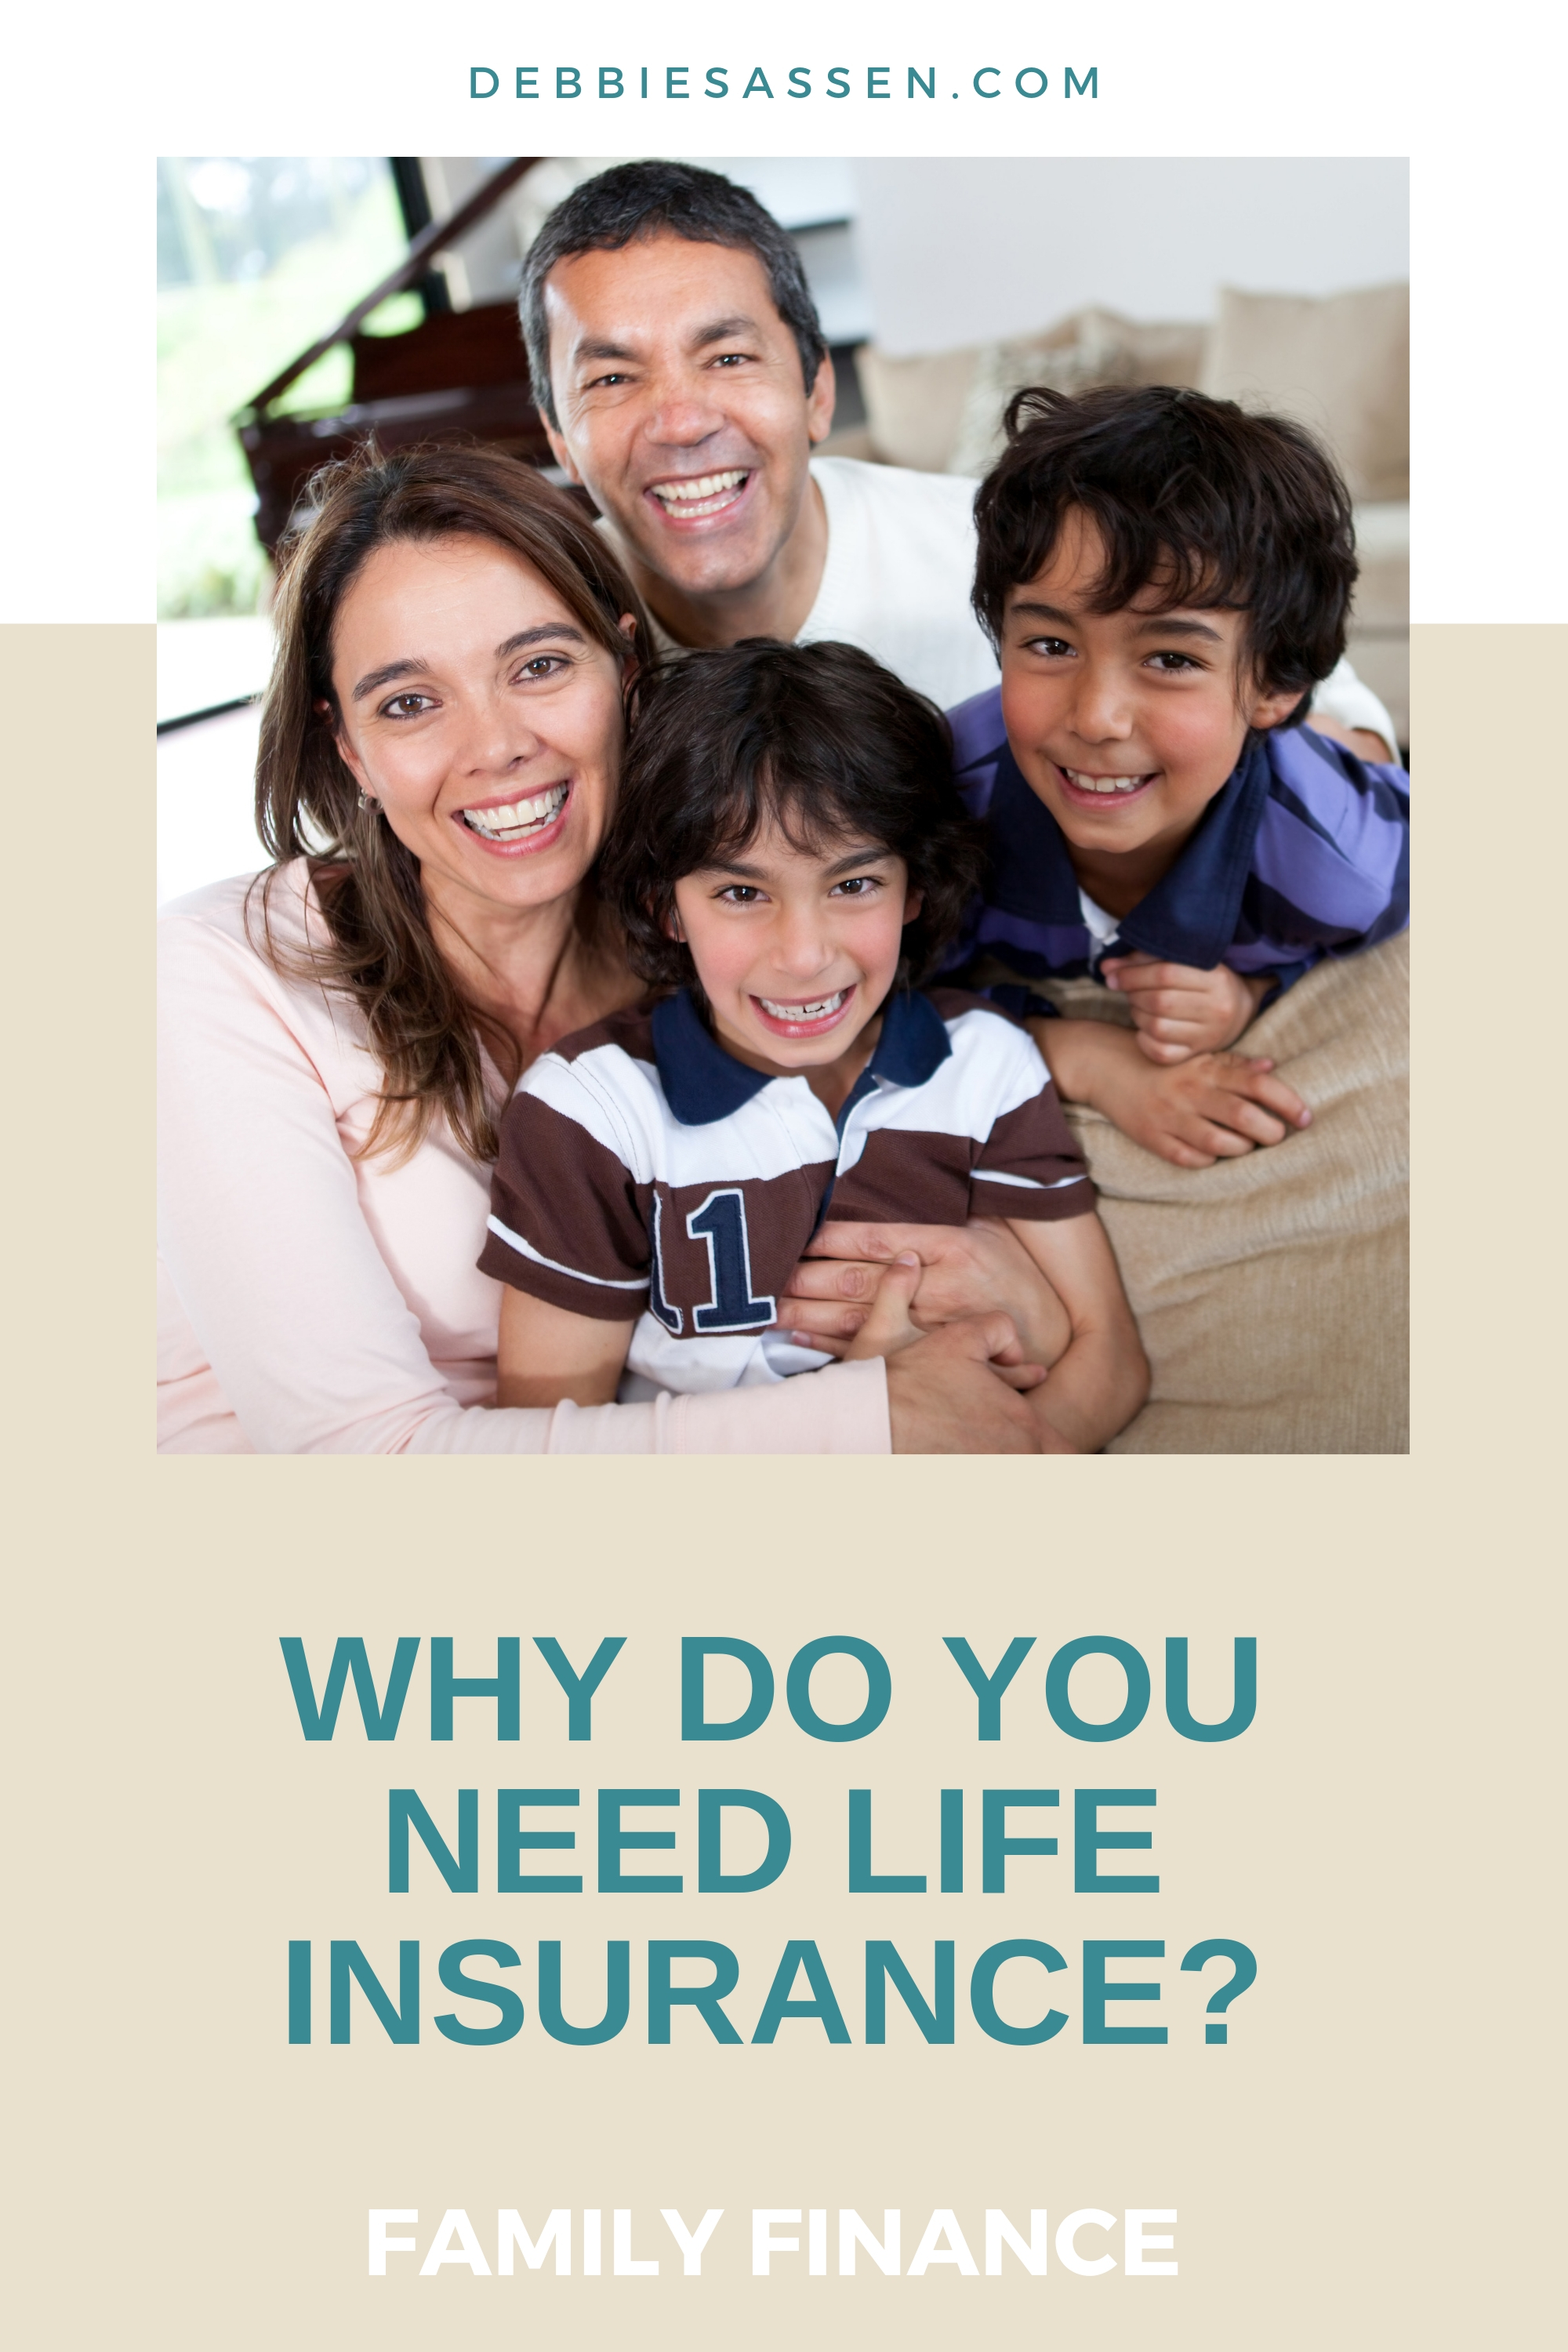 Why do you need insurance Pin - Debbie Sassen